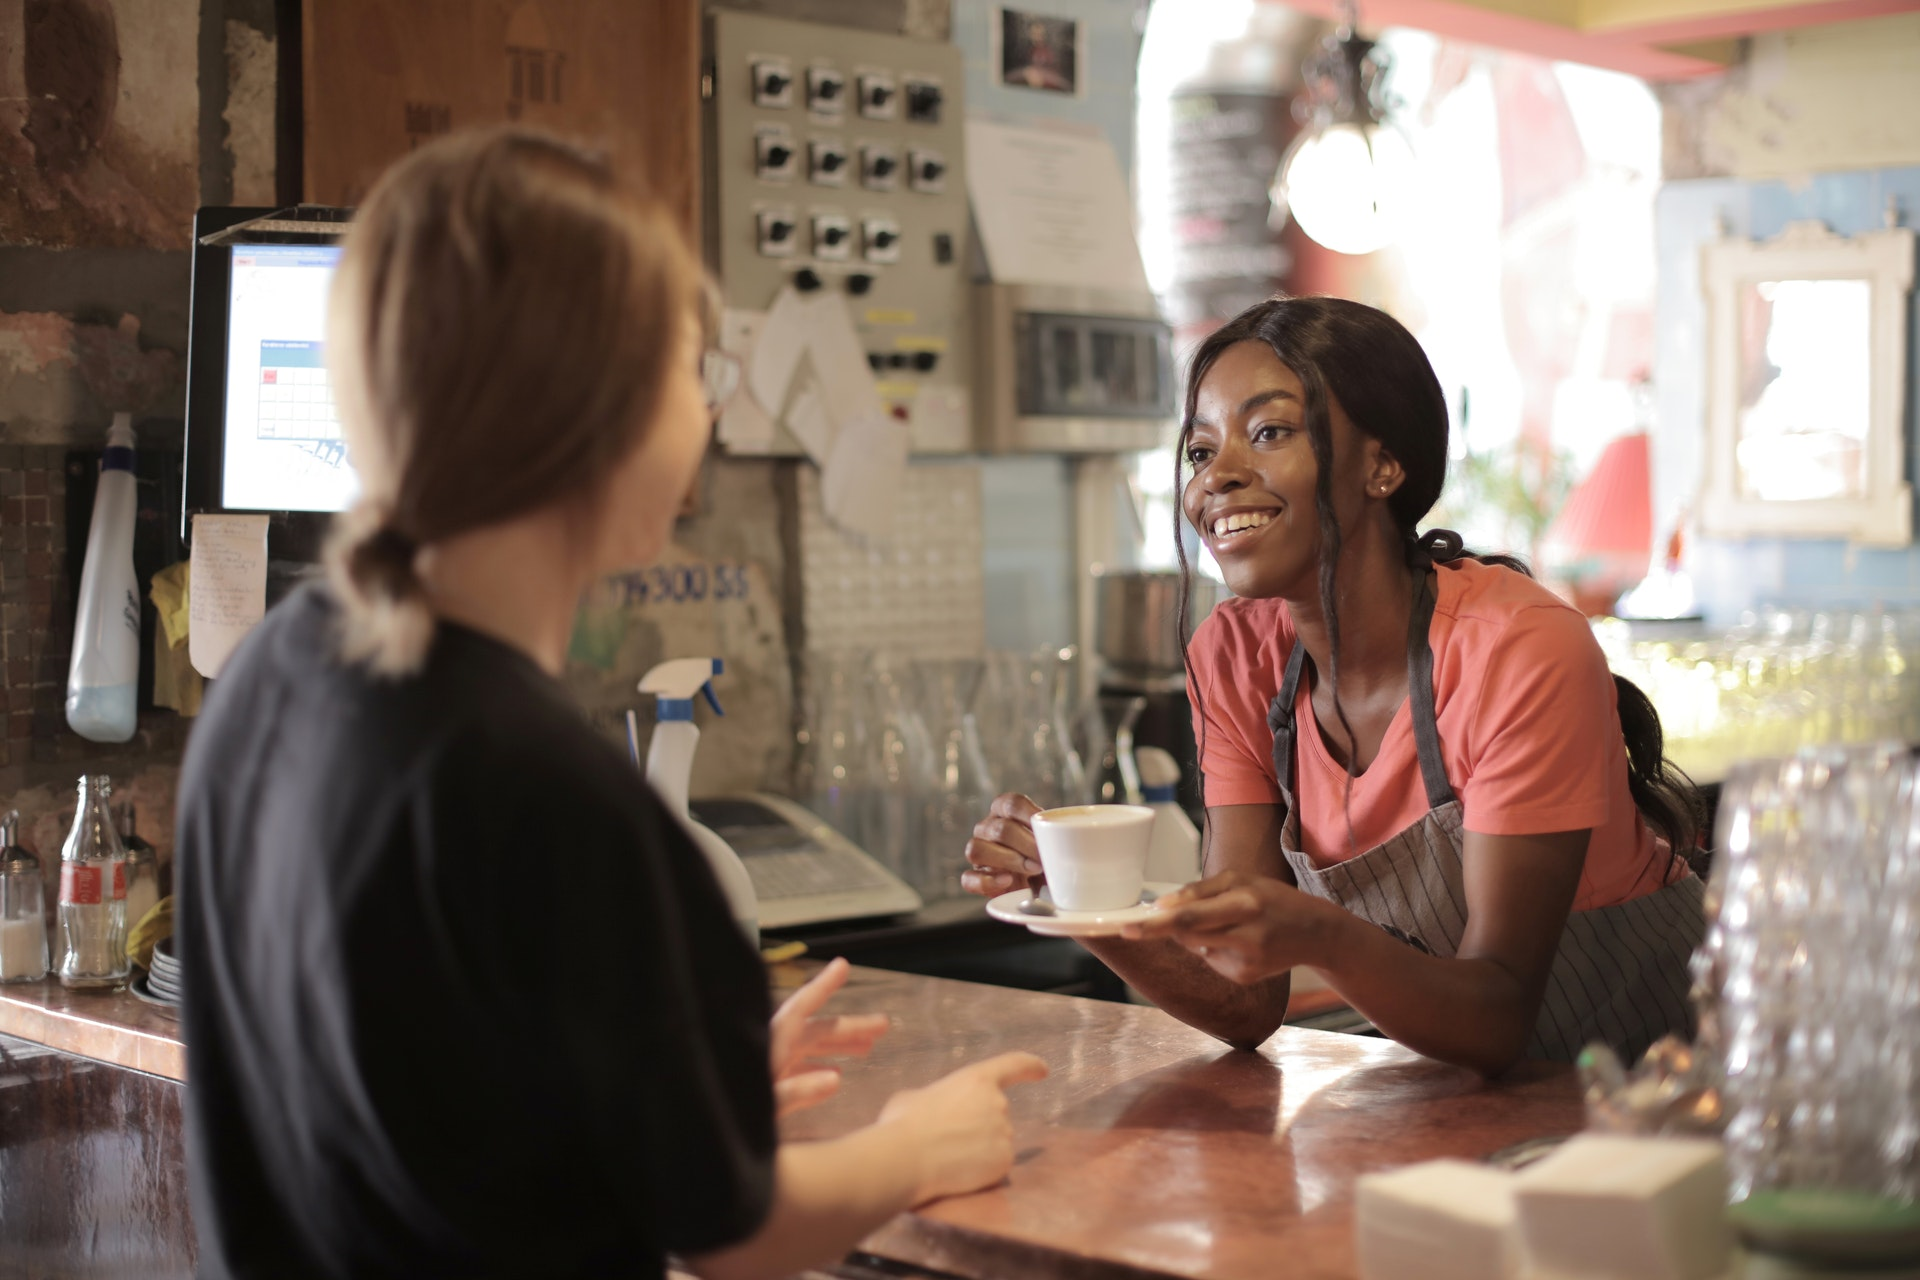 a female barista serving a cup of coffee to a female customer in a cafe